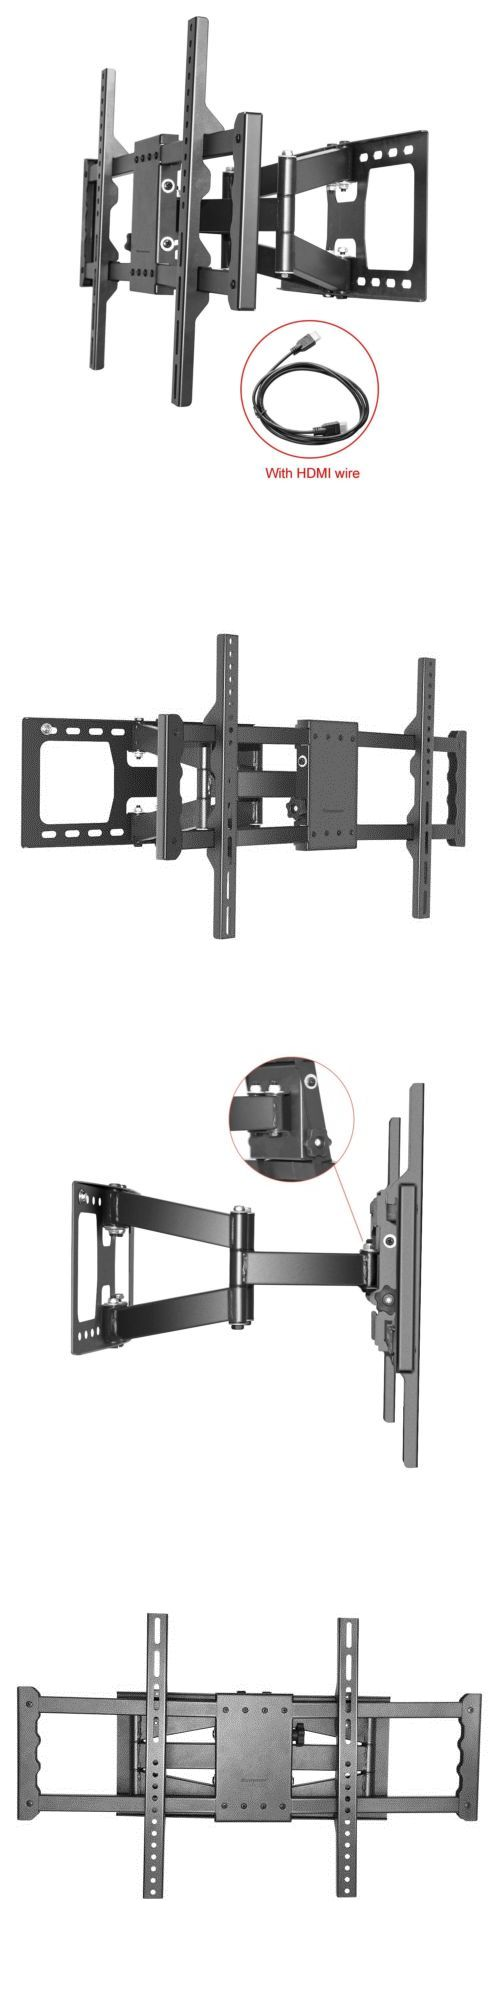 TV Mounts and Brackets: Full Motion Tilt Plasma Lcd Led Tv Wall Mount Bracket42 46 50 55 60 62 -> BUY IT NOW ONLY: $35.99 on eBay!